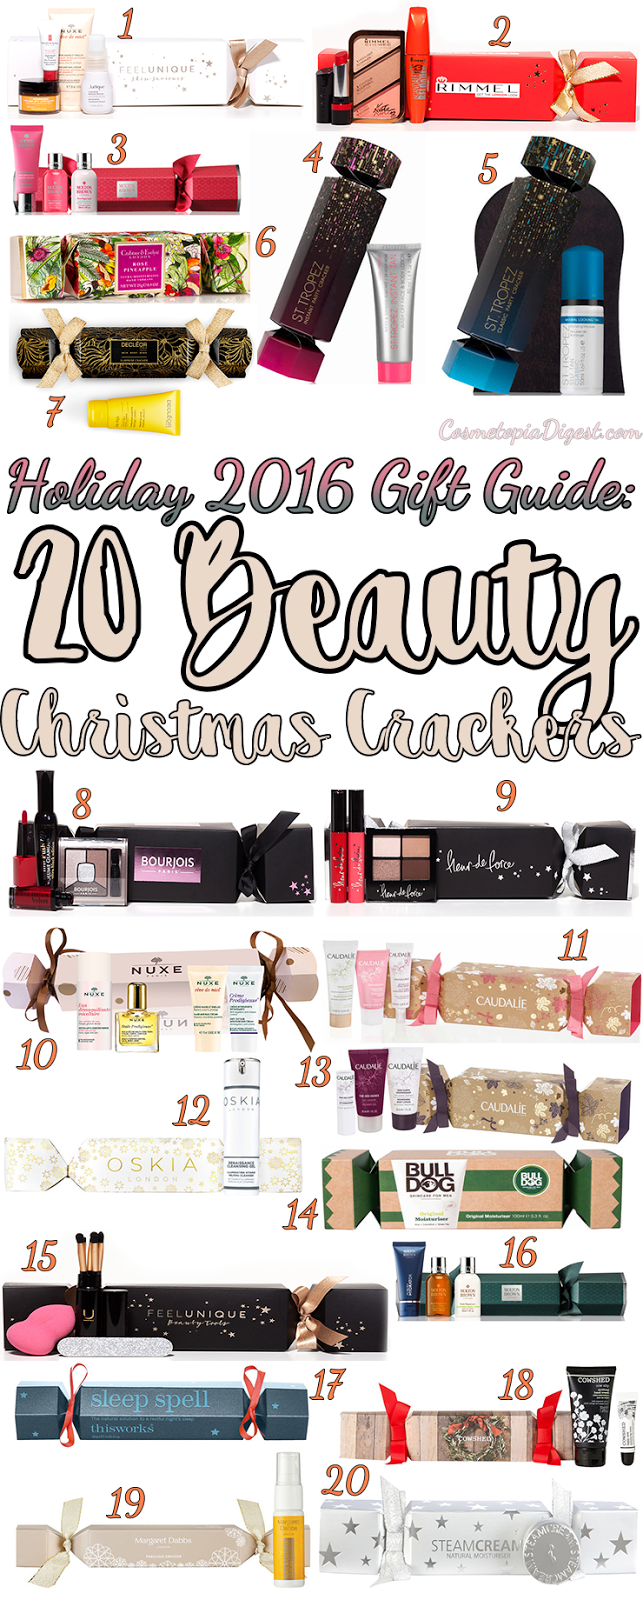 20 beauty Christmas crackers, with makeup and skincare - great budget Holiday gift ideas!